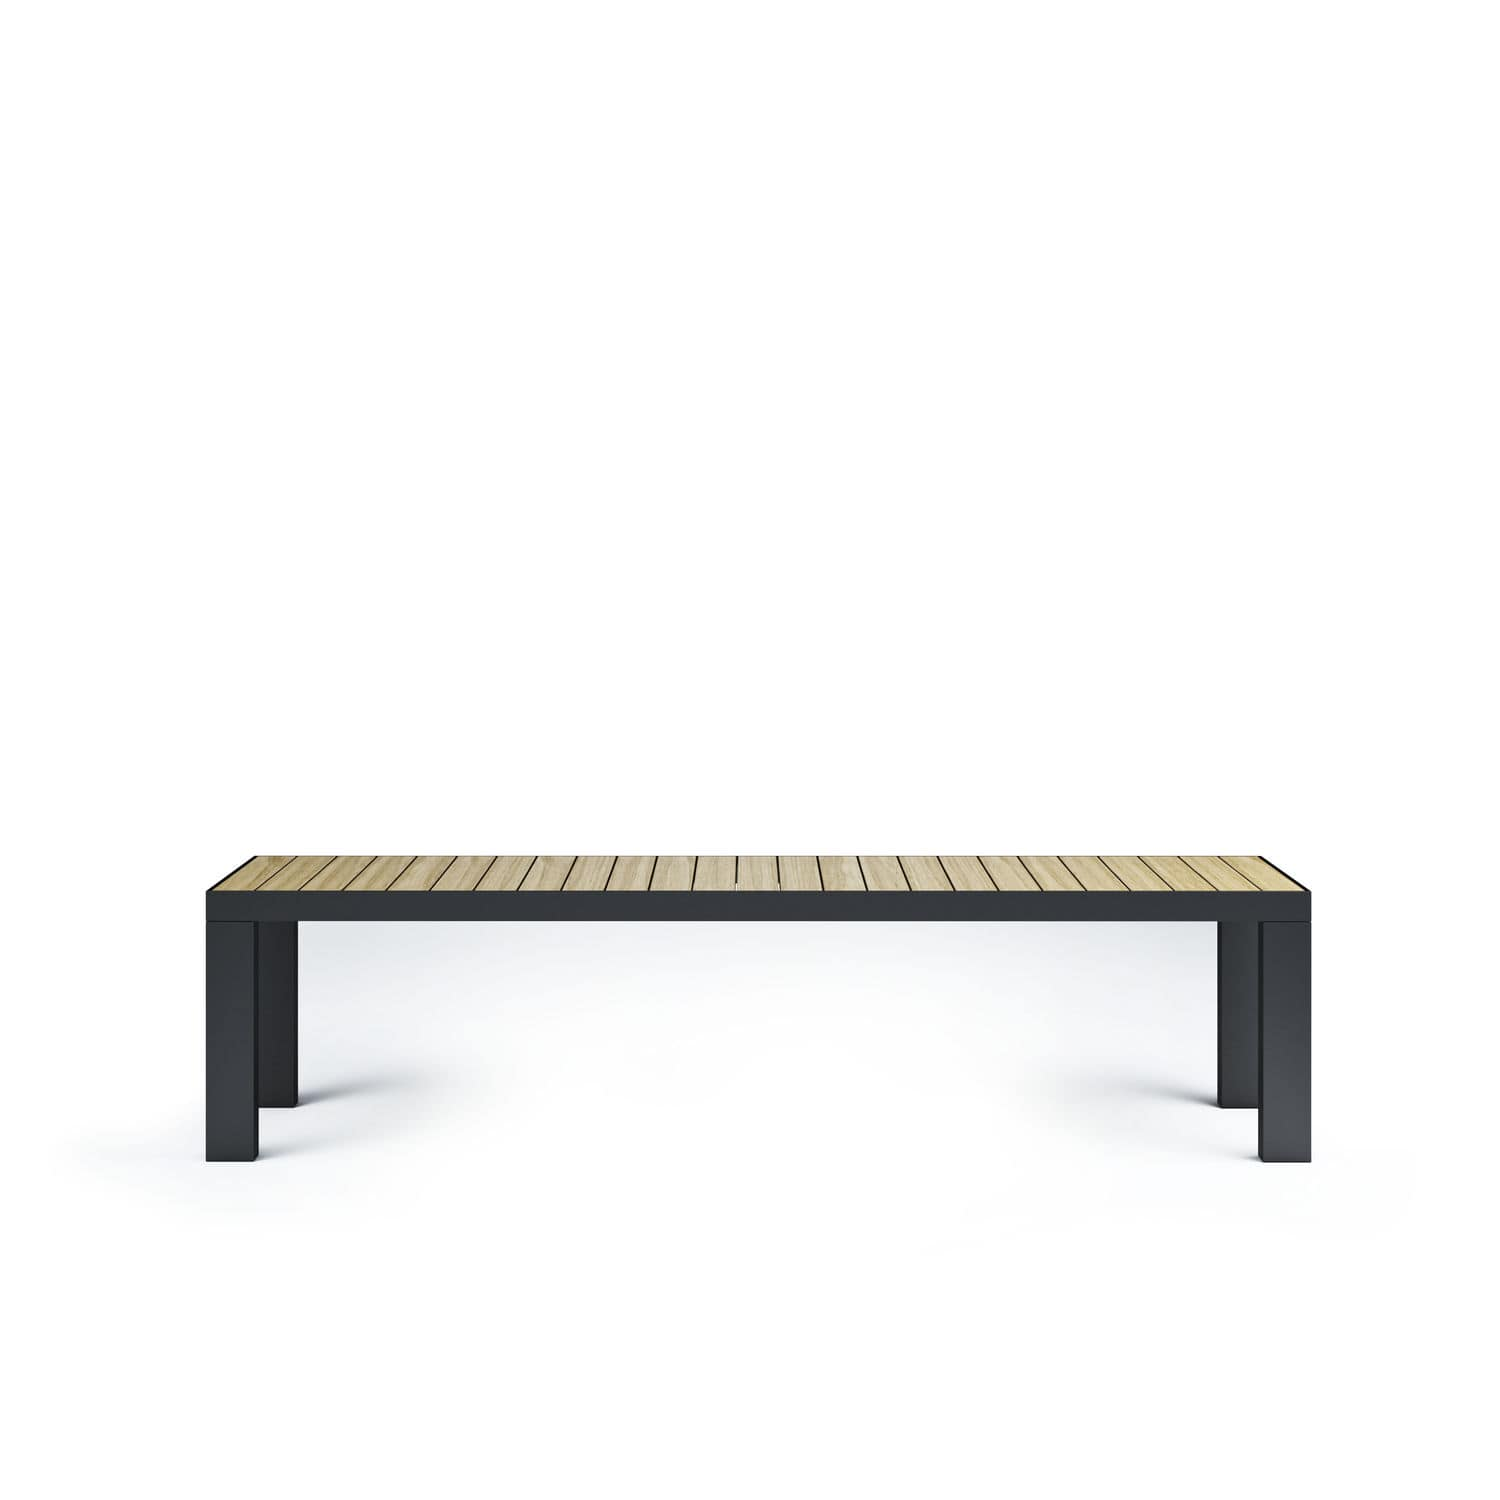 garden bench  contemporary  teak  stainless steel  garden by  -  garden bench  contemporary  teak  stainless steel garden by broberg ridderstråle röshults